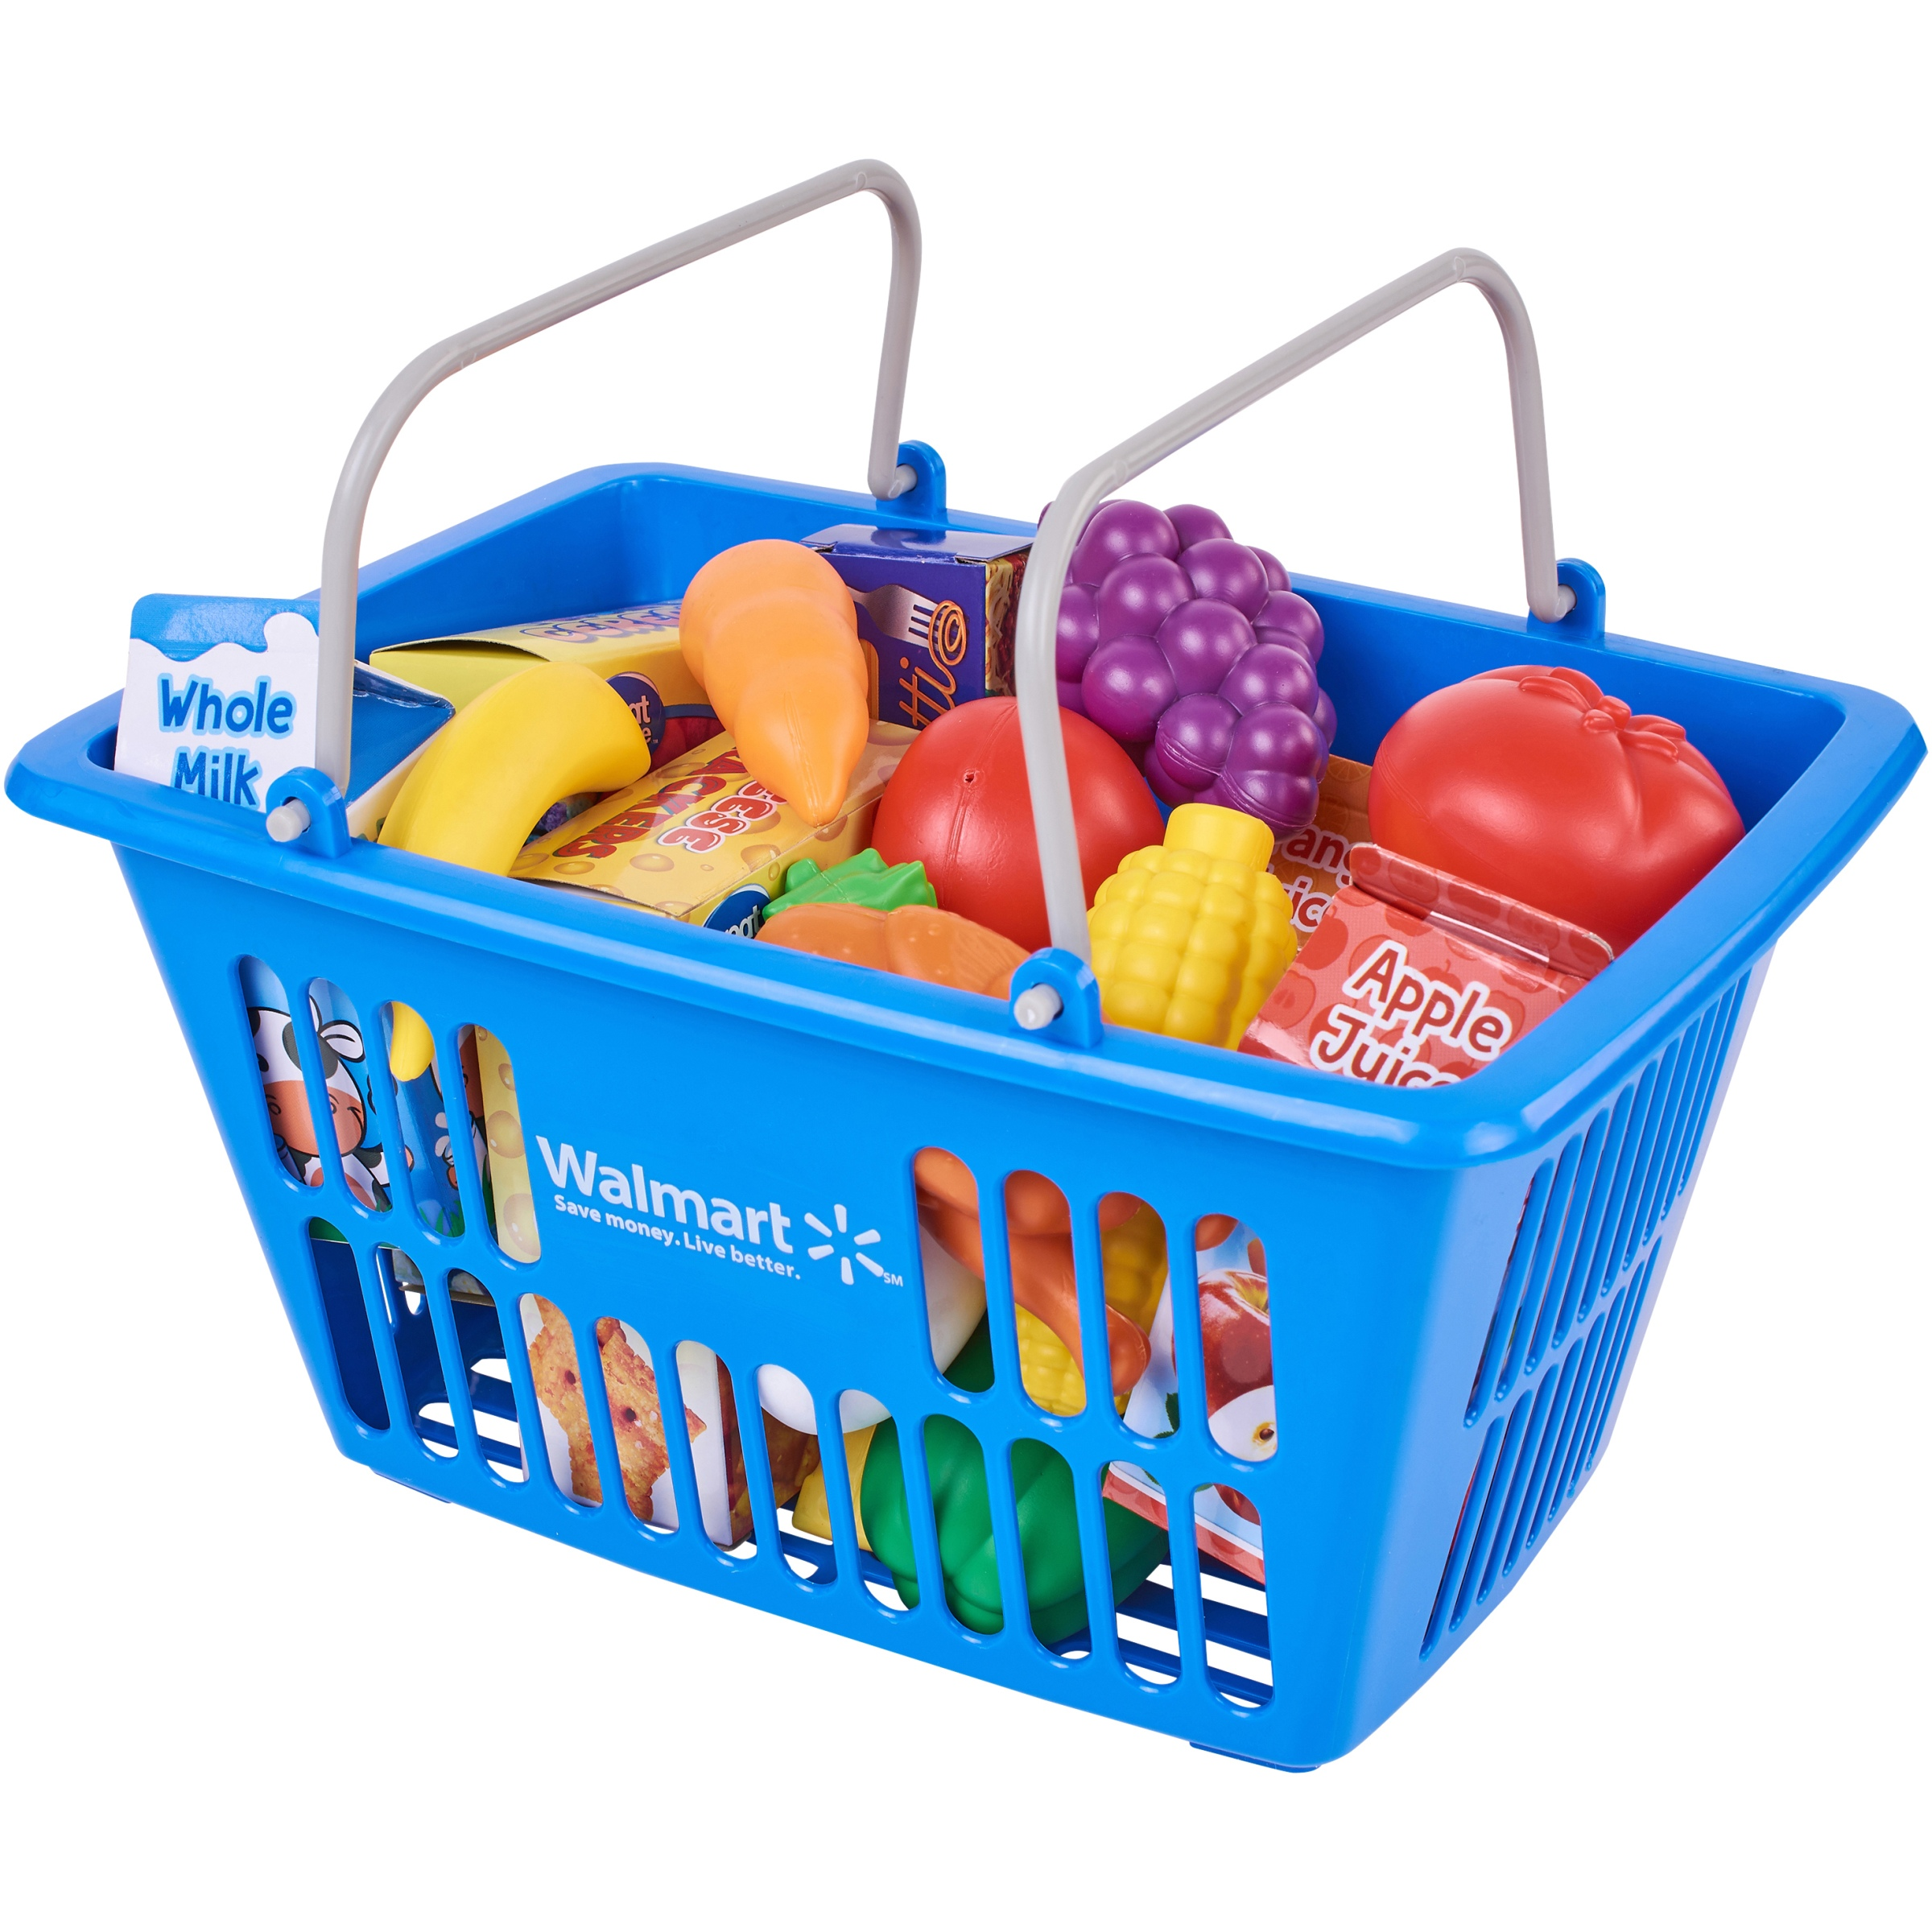 Spark. Create. Imagine. Shopping Basket Play Food Set, Designed for Ages 3 and Up